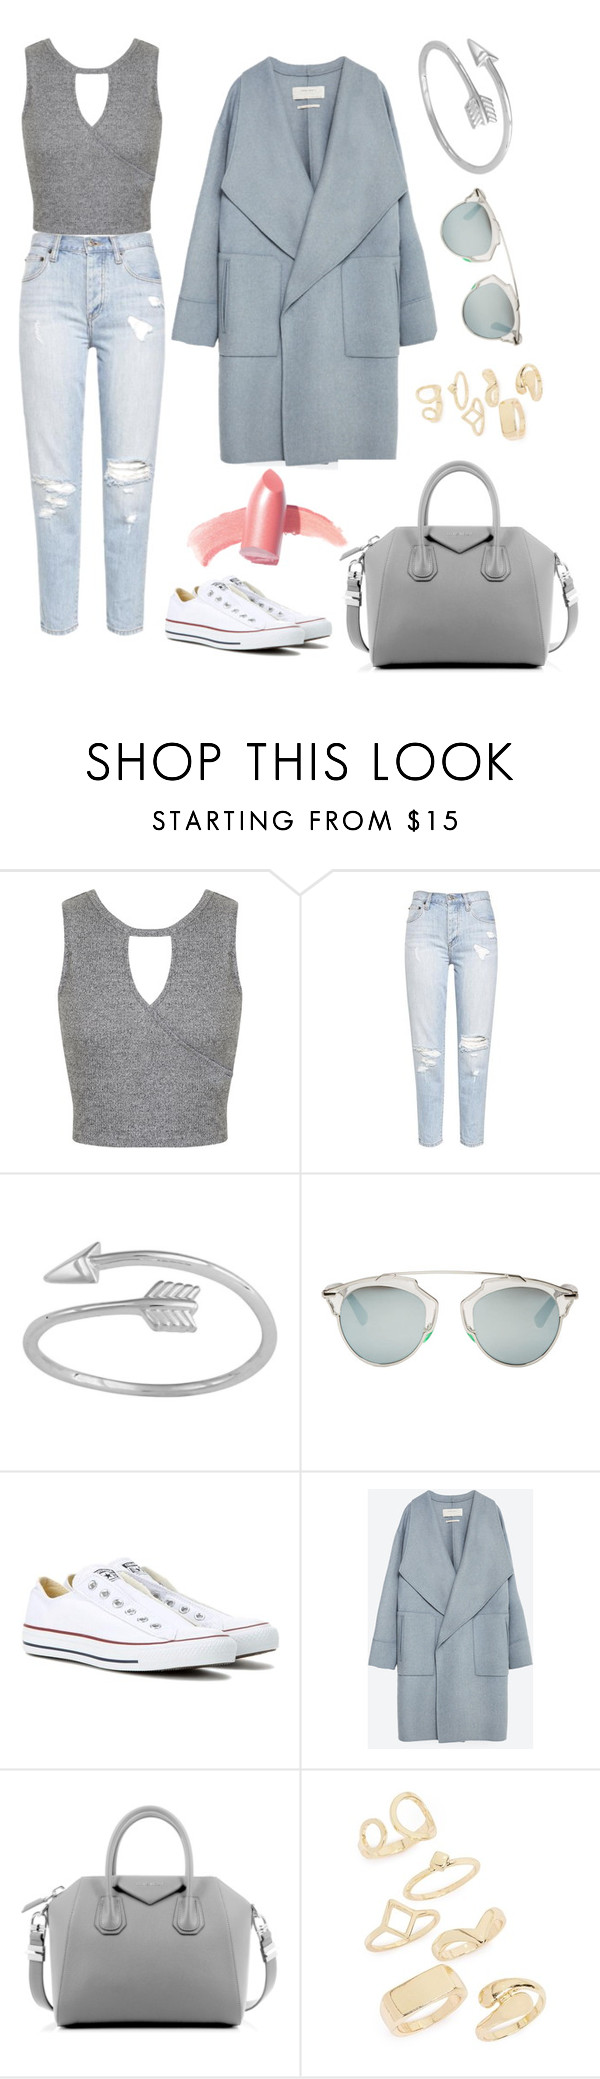 """""""50 shades of blue"""" by v-narauskaite ❤ liked on Polyvore featuring Miss Selfridge, Christian Dior, Converse, Zara, Givenchy, Topshop and Elizabeth Arden"""